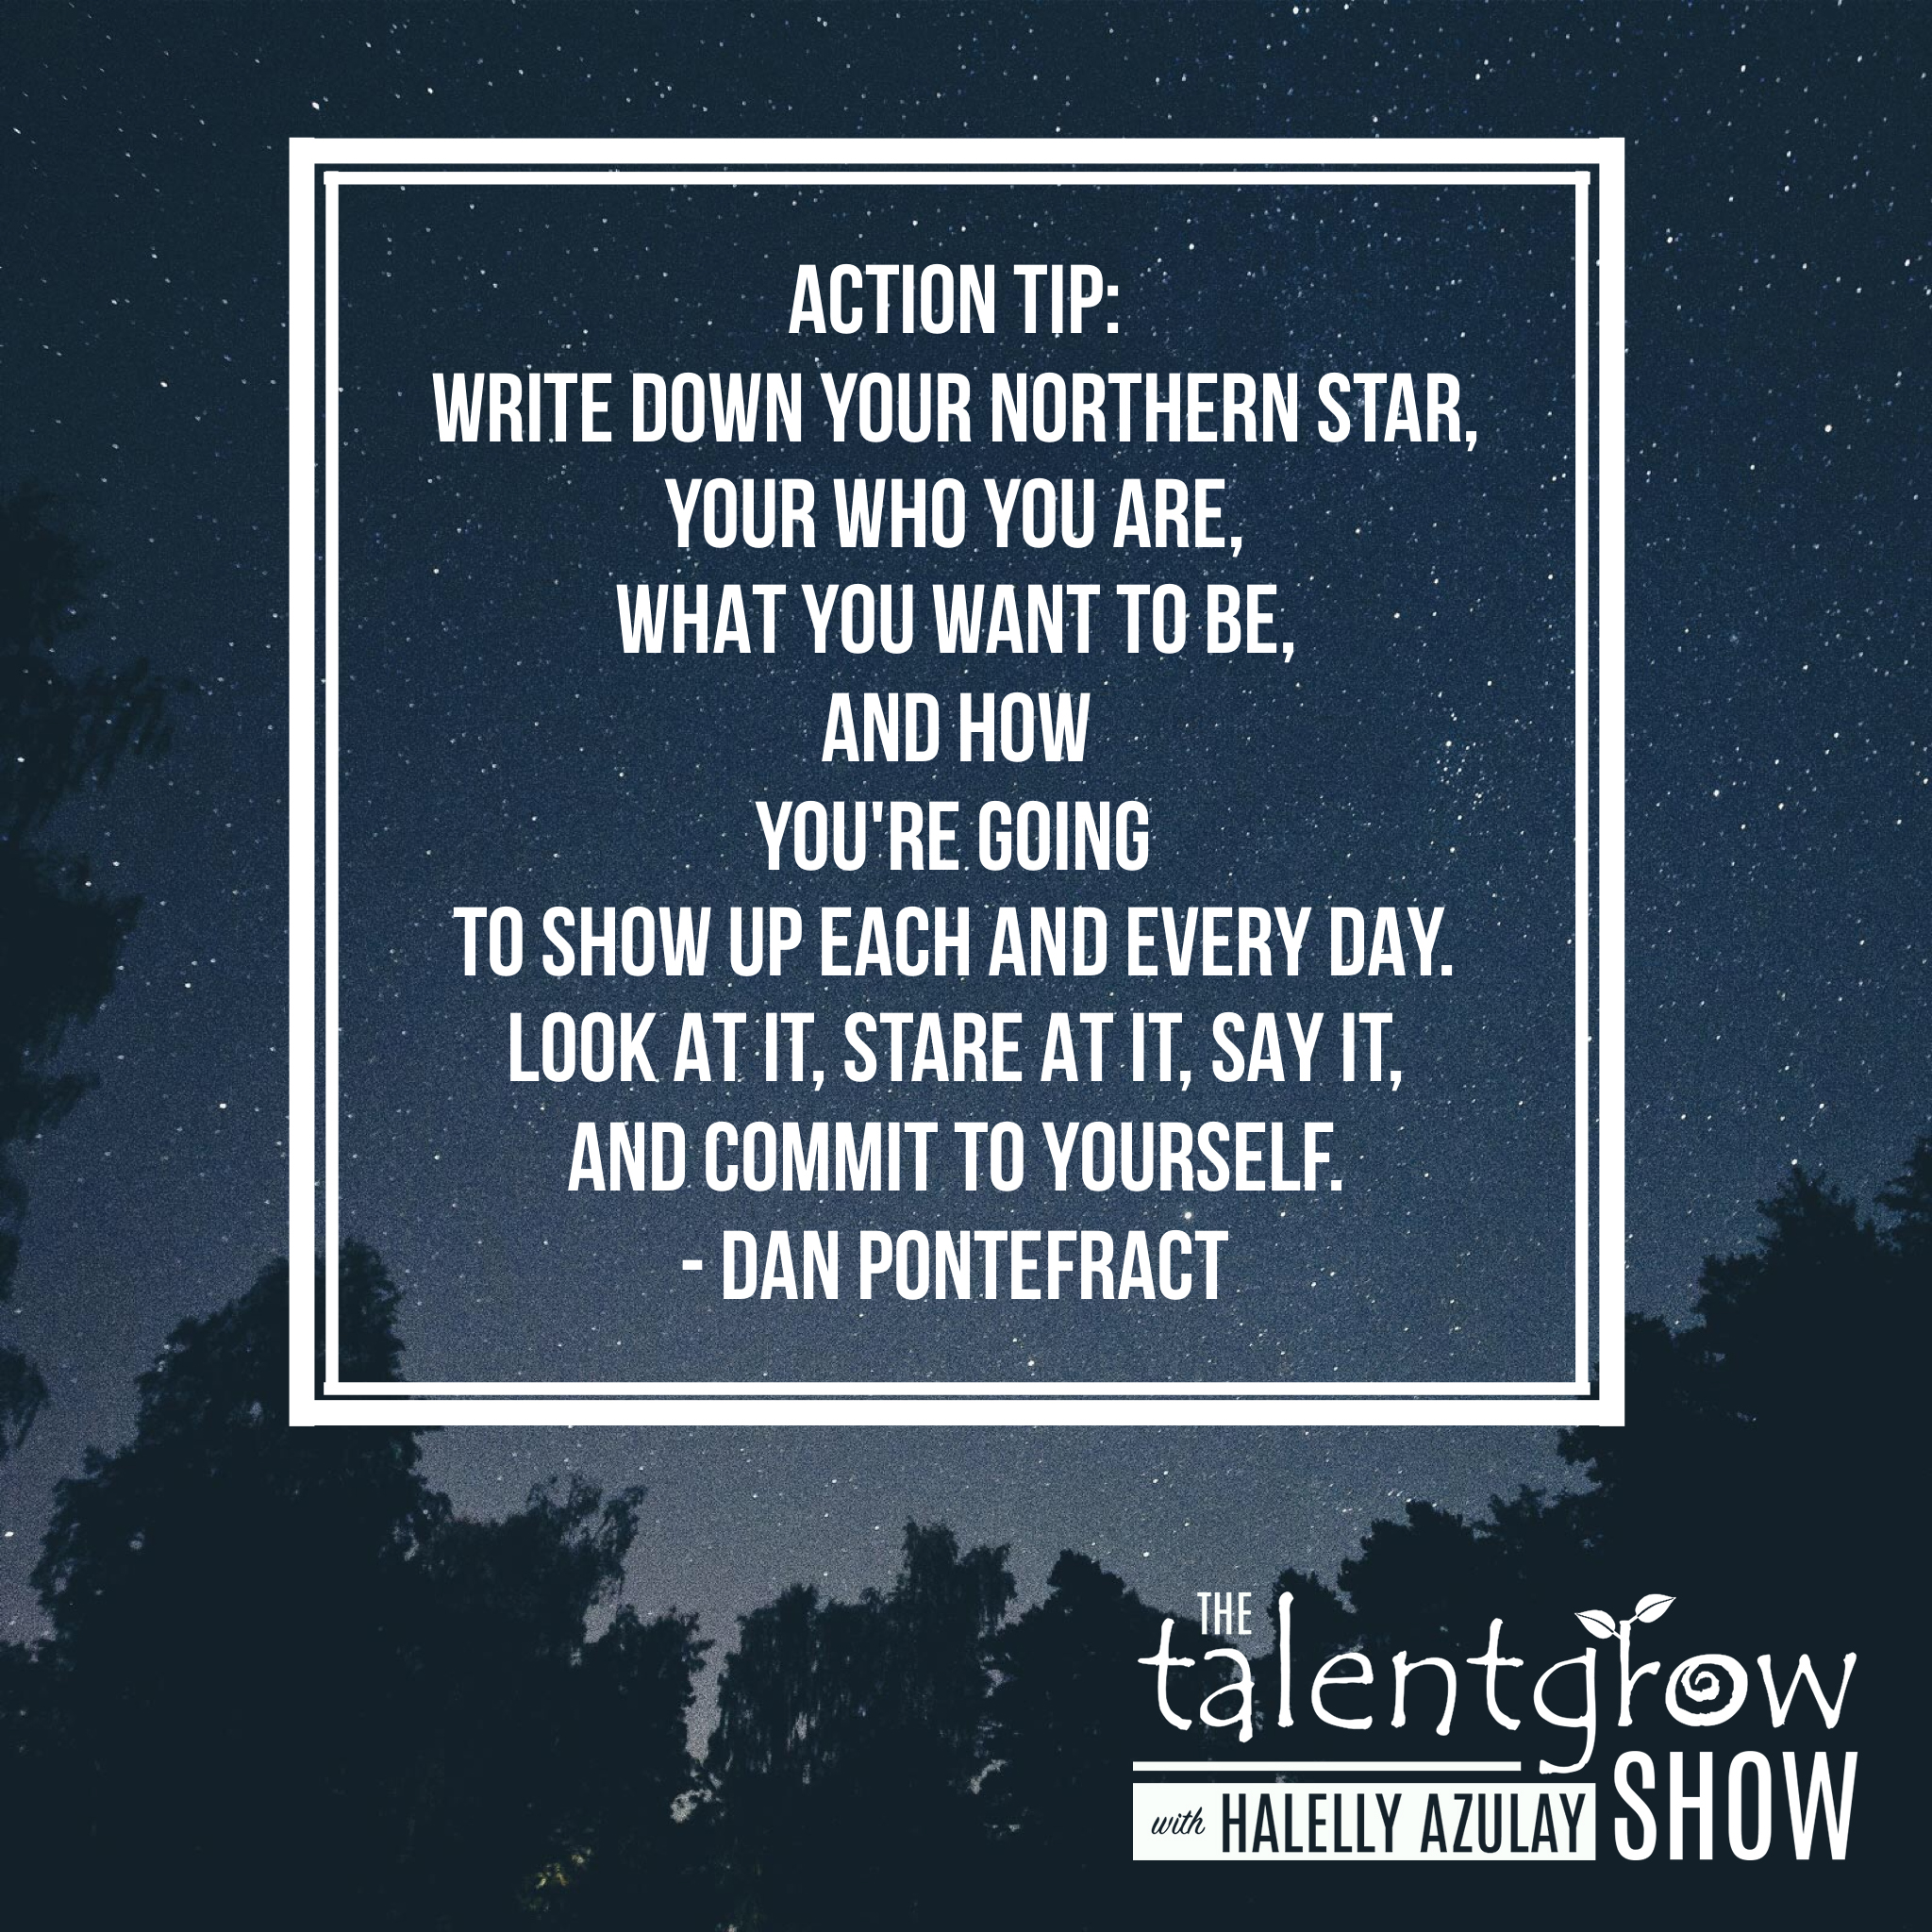 Action tip from Dan Pontefract on the TalentGrow Show podcast with Halelly Azulay